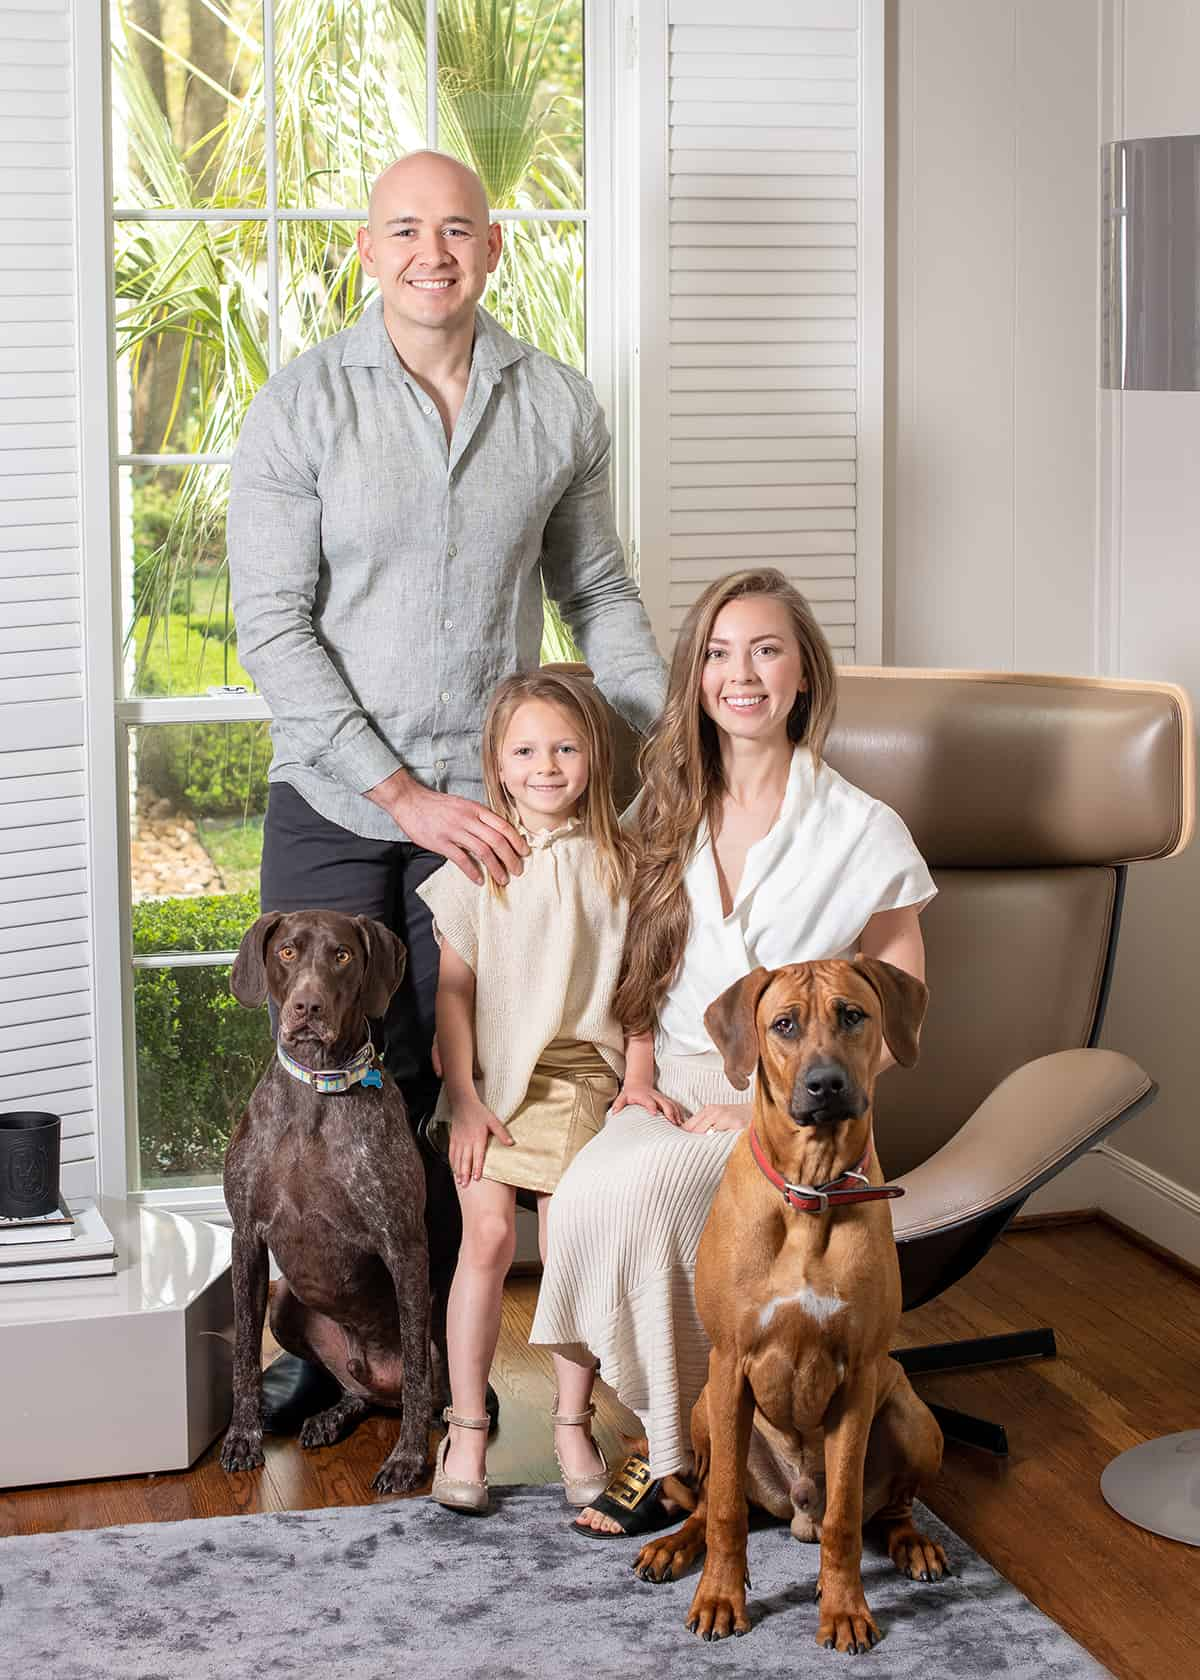 In home River Oaks photoshoot with young family for Magazine